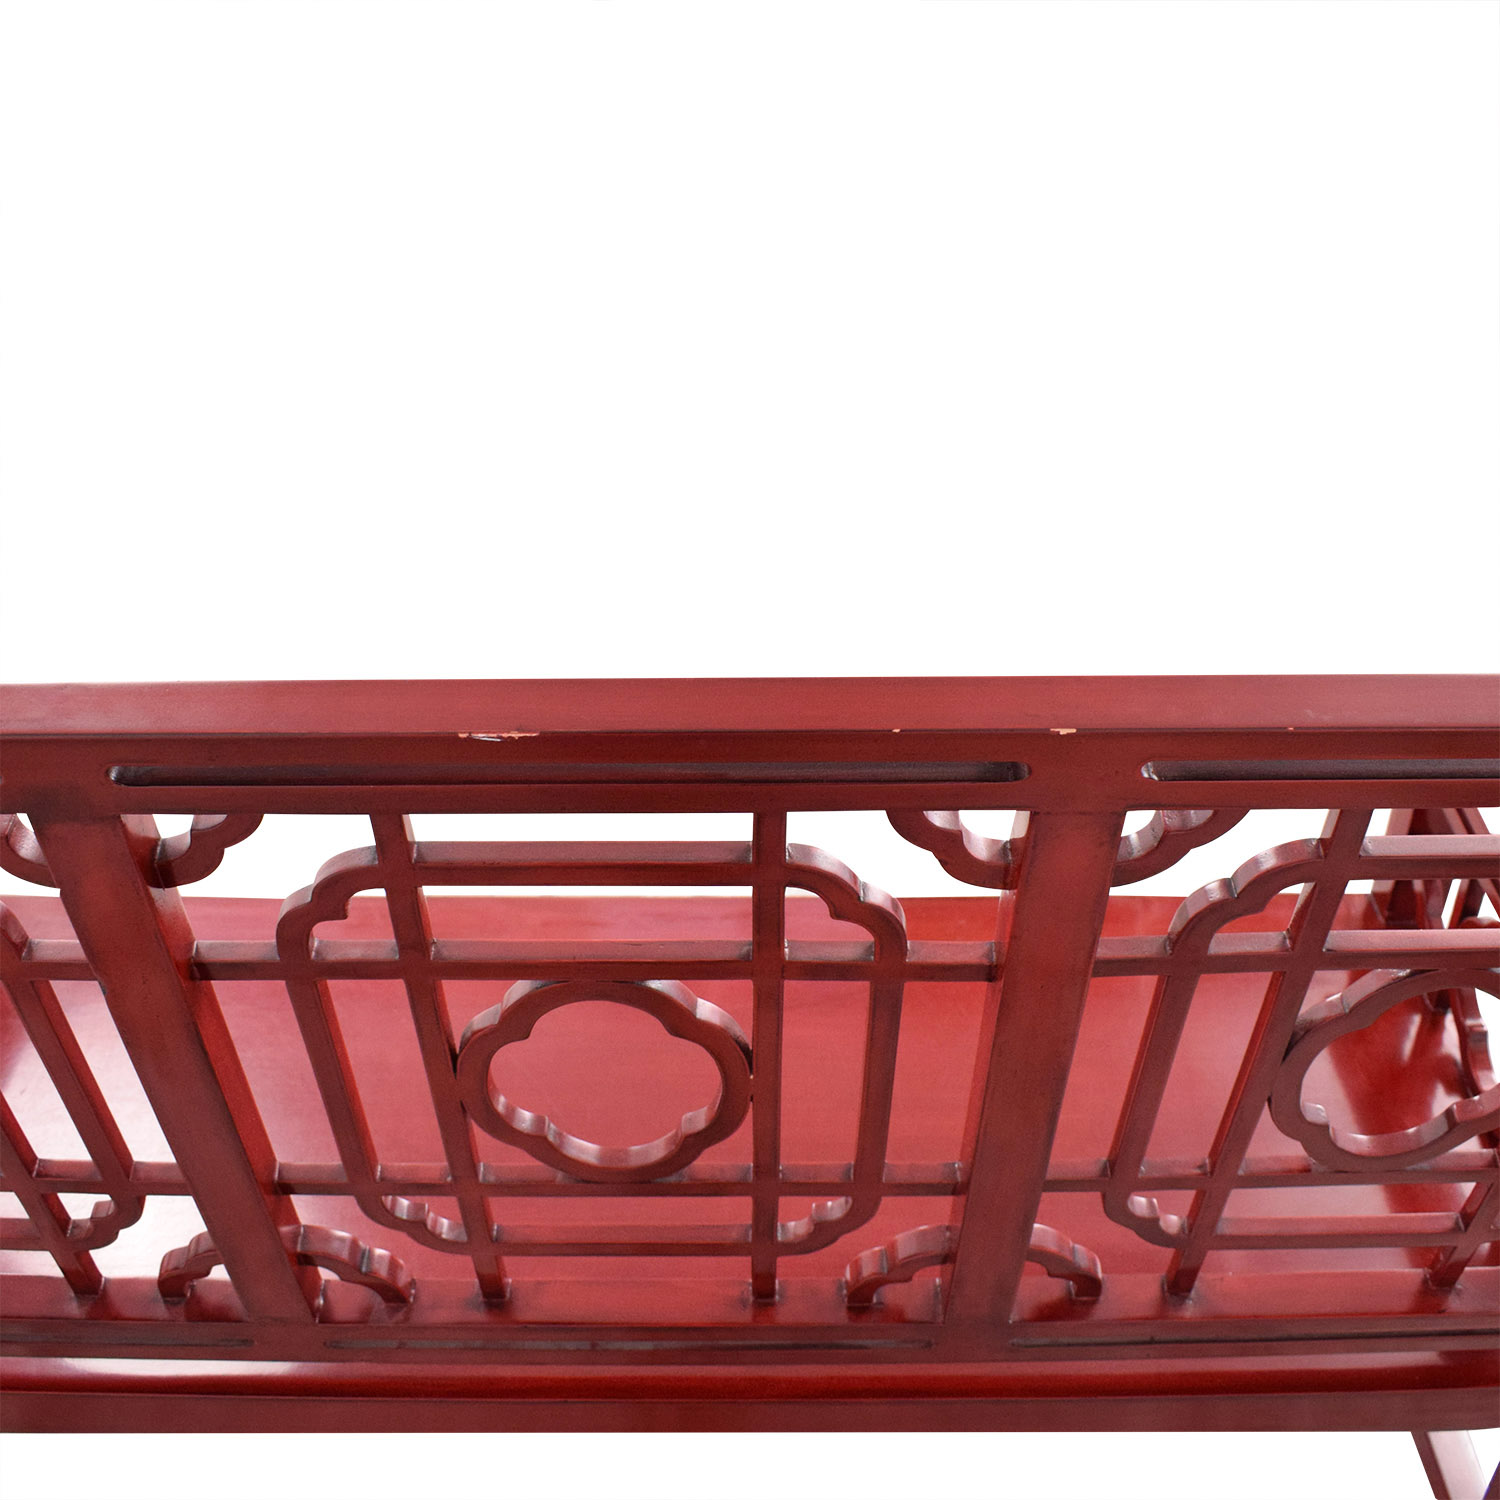 Neiman Marcus Neiman Marcus Chinese Lacquer Bench discount